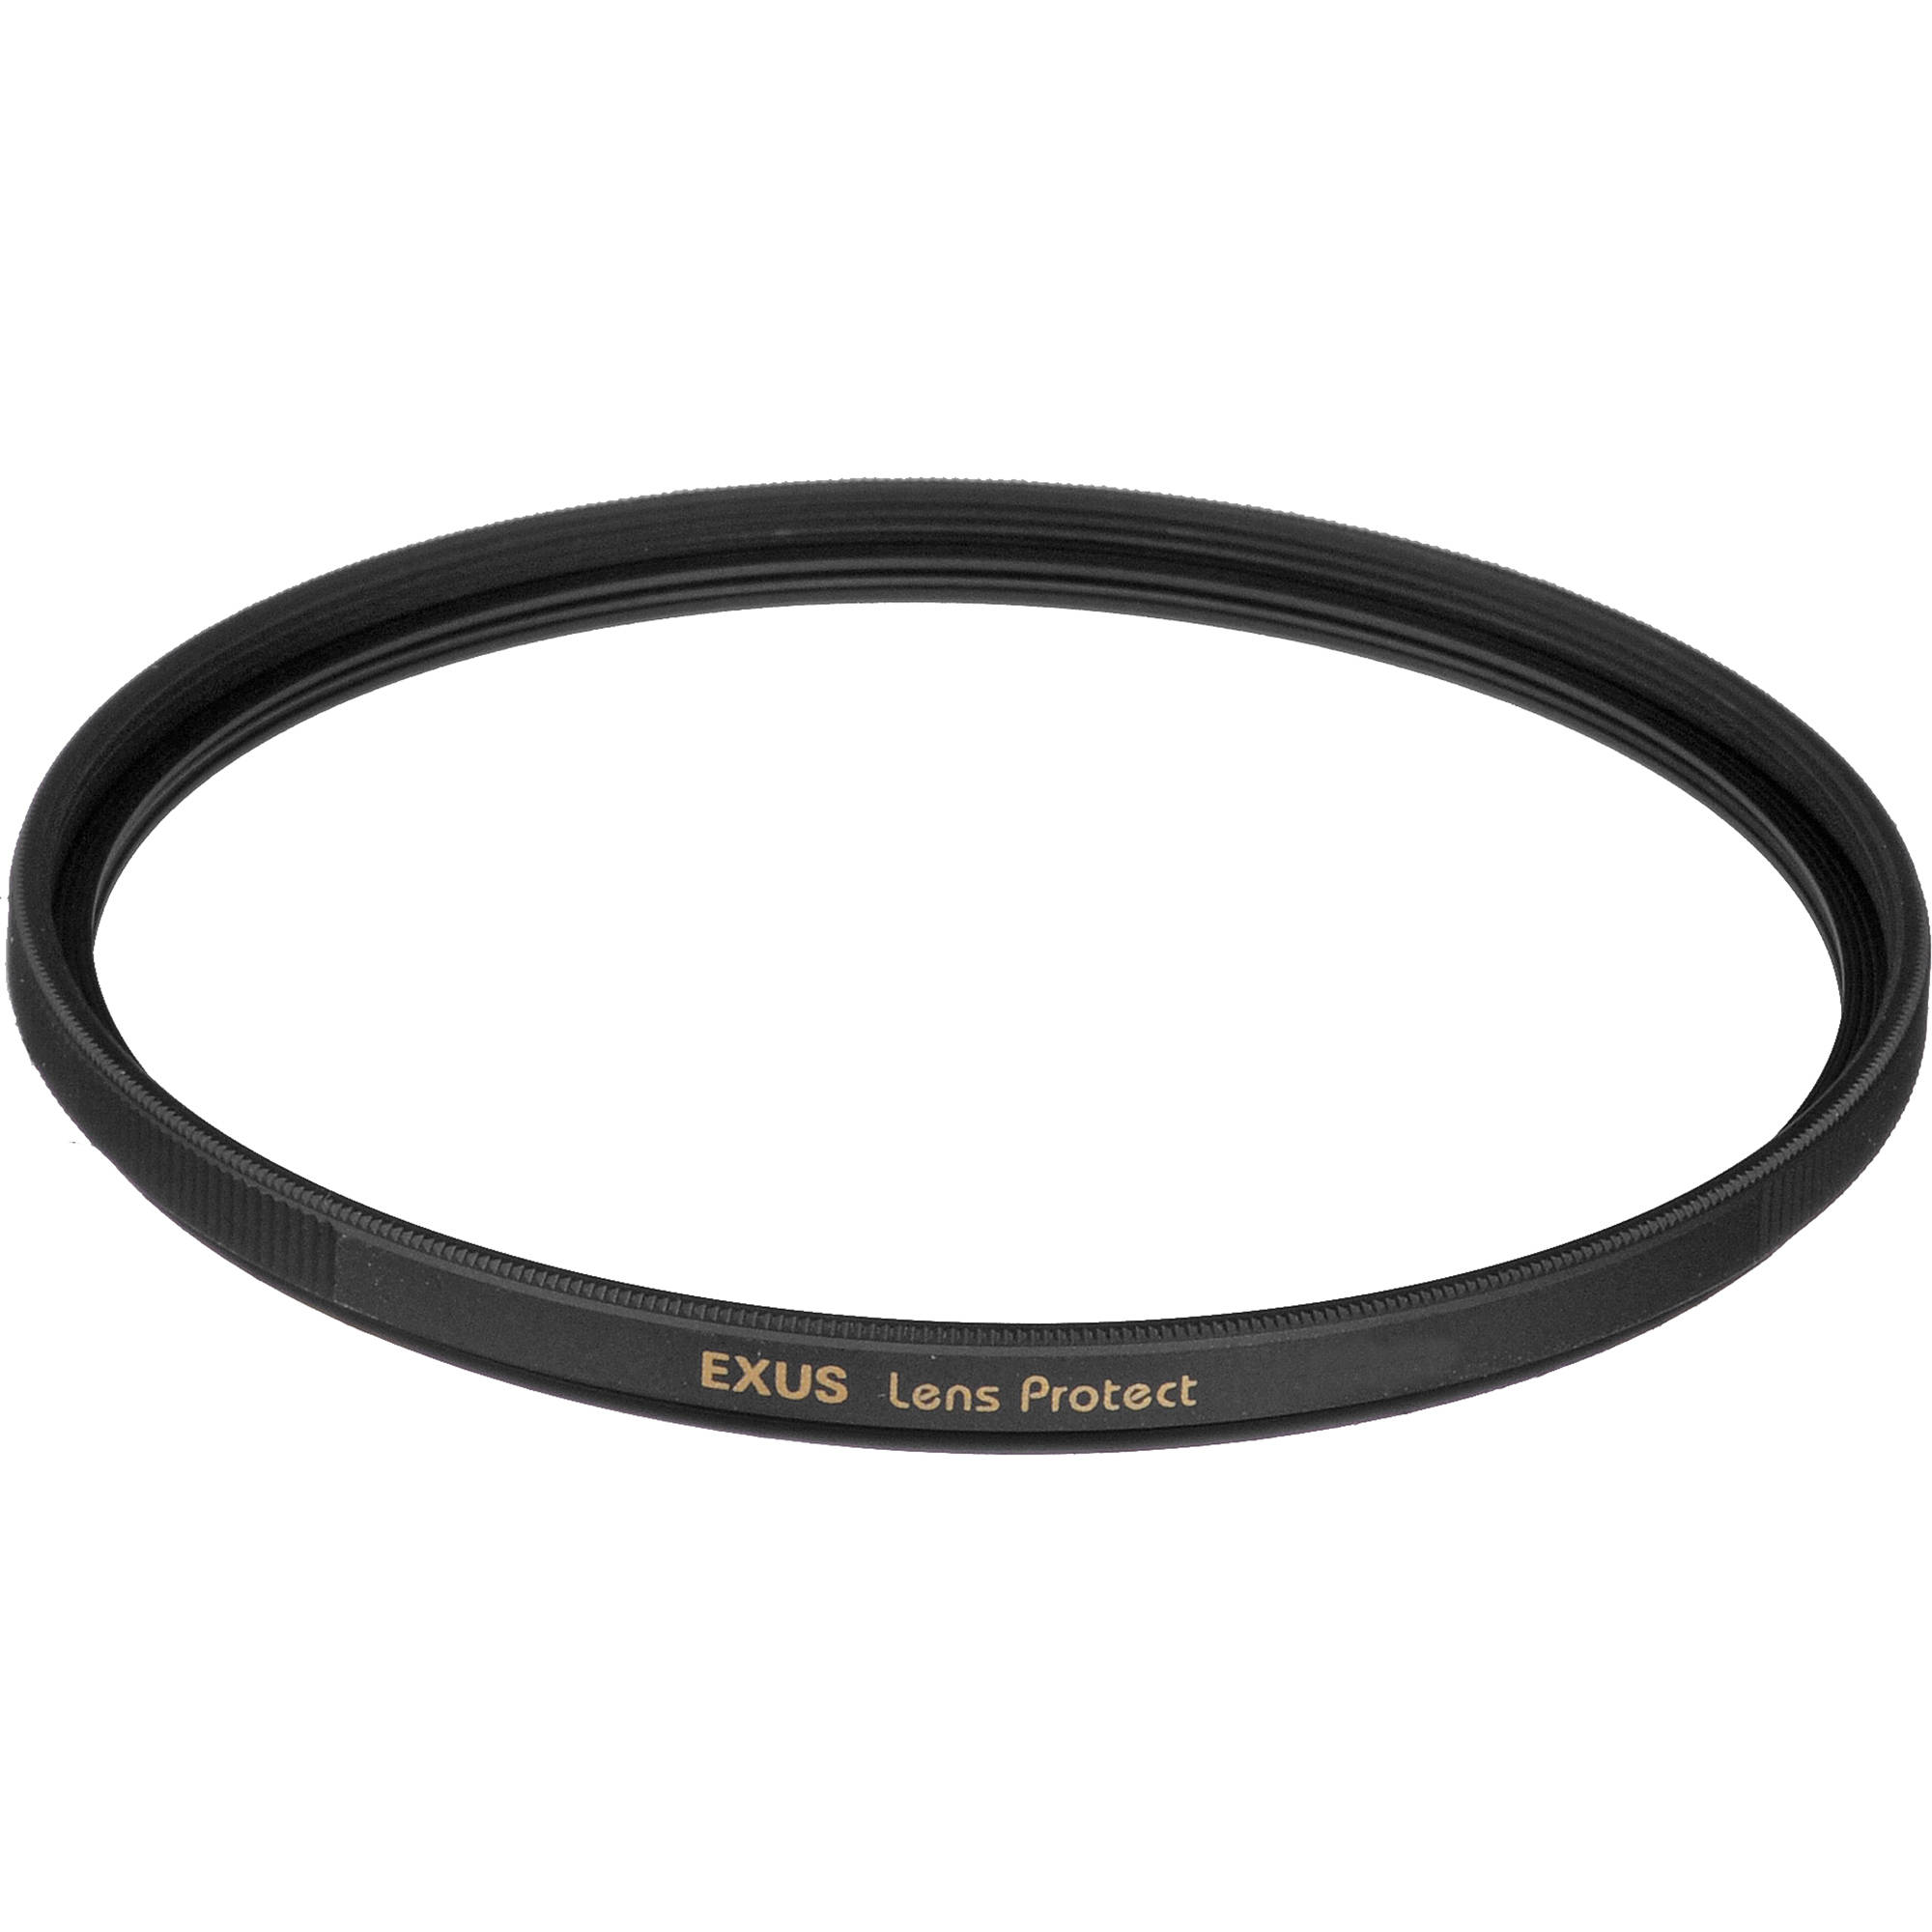 Marumi EXUS Solid 86mm Lens Protect Filter Anti-Static Hard Coated 86 Made in Japan 7 X Stronger